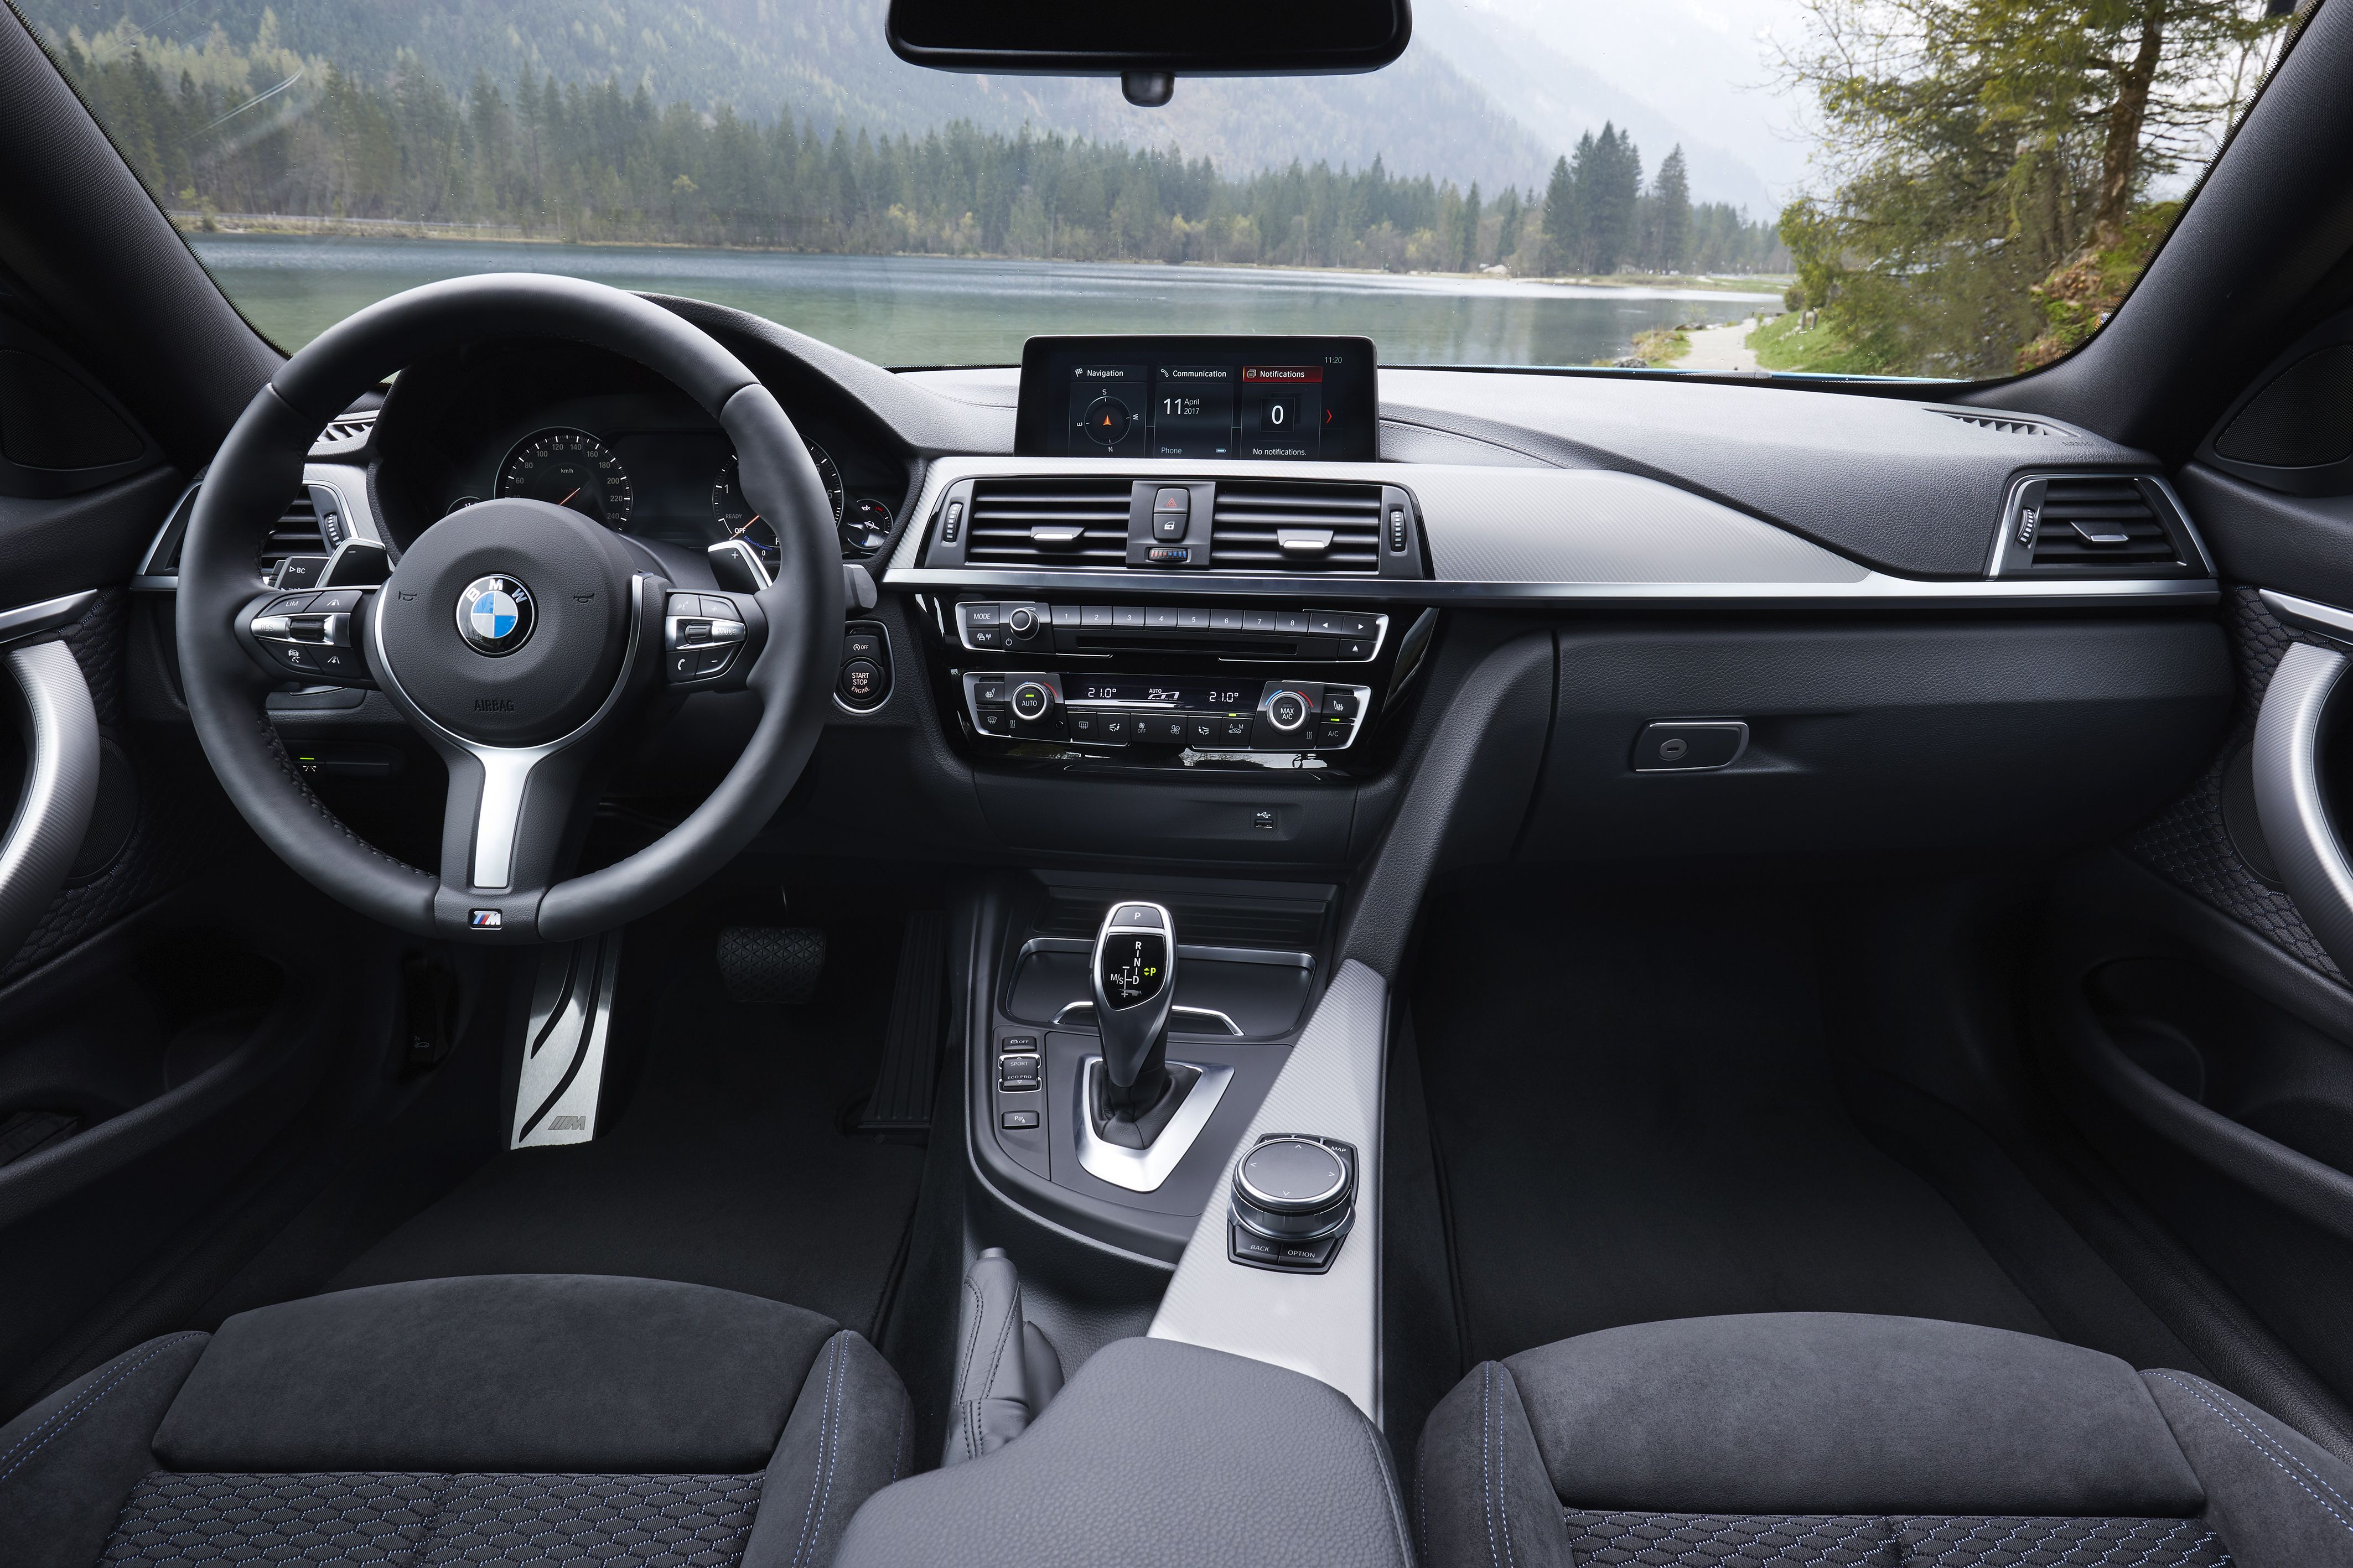 Bmw F32 440i Coupe Mpackage Snapperrocksblue Facelift